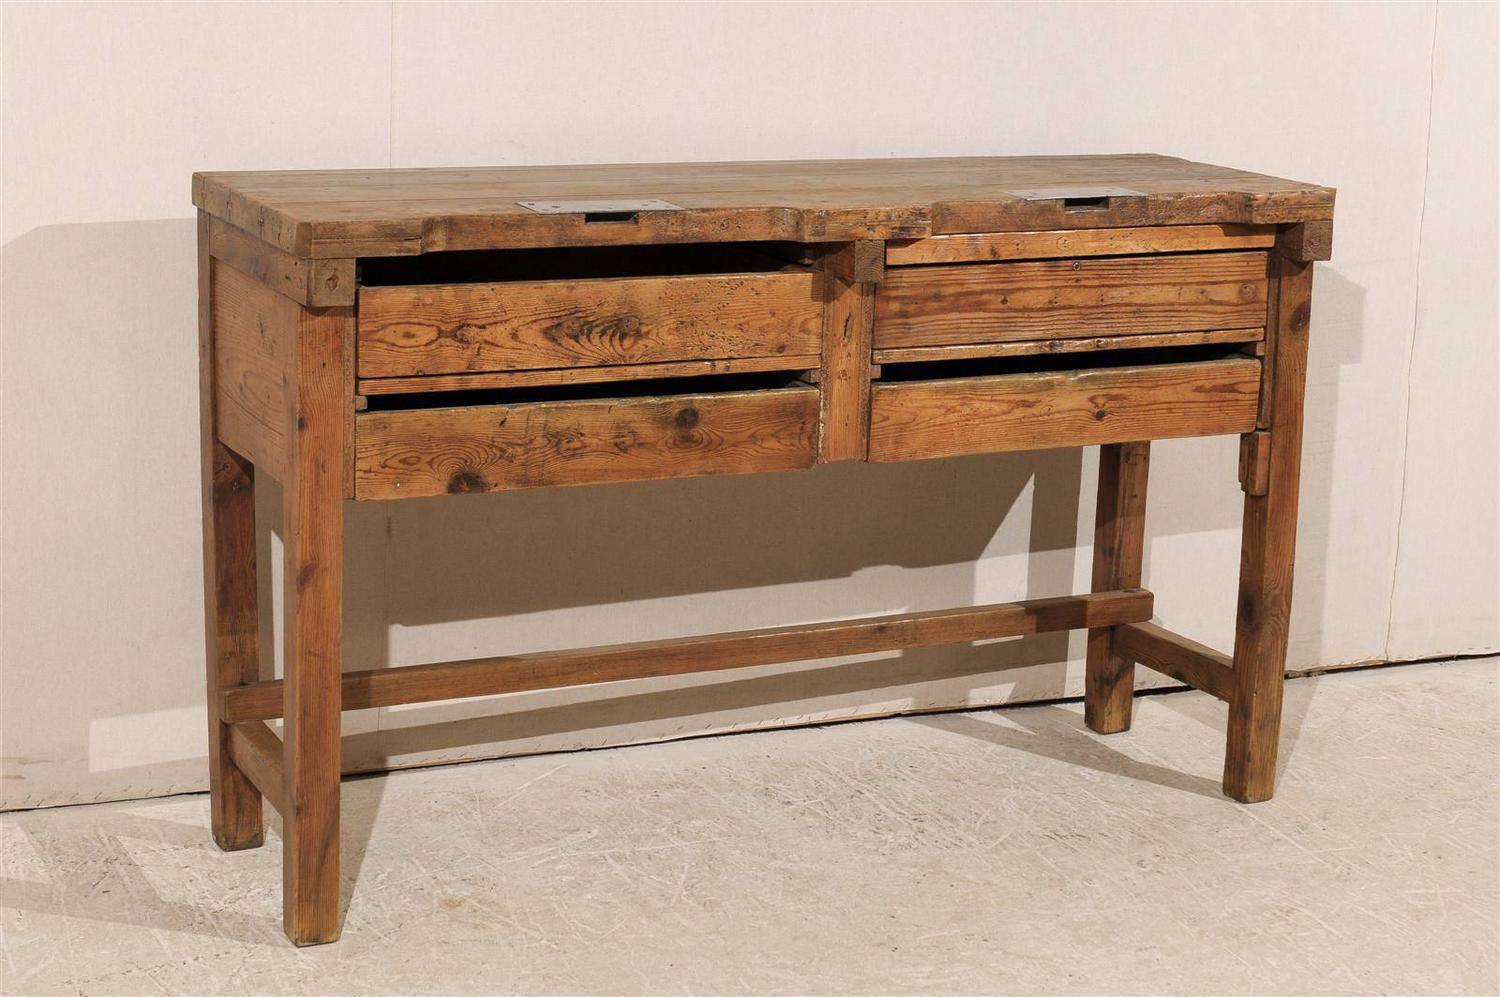 19th Century Jeweler S Table Or Work Bench For Sale At 1stdibs